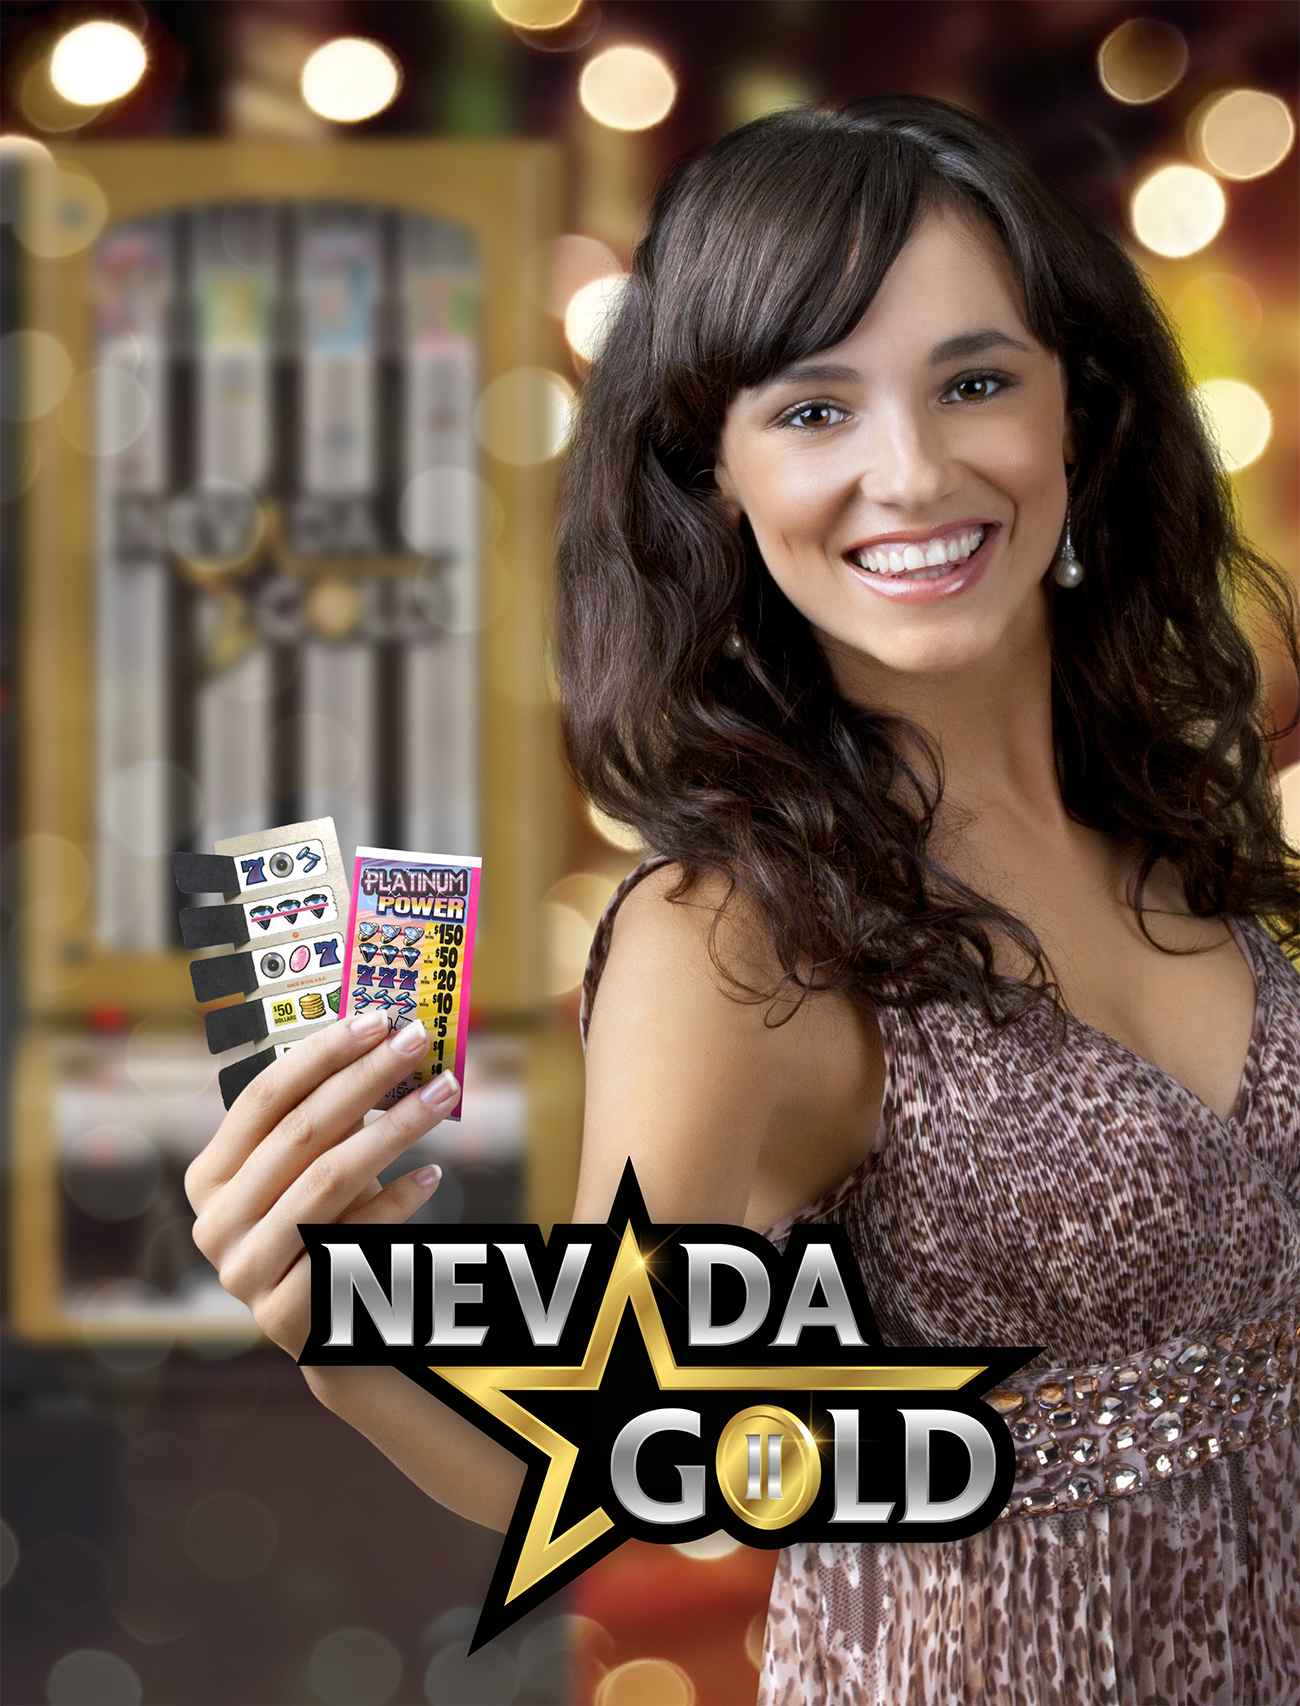 Nevada Gold II Brochure Promotional Materials/Equipment Flyers & Brochures